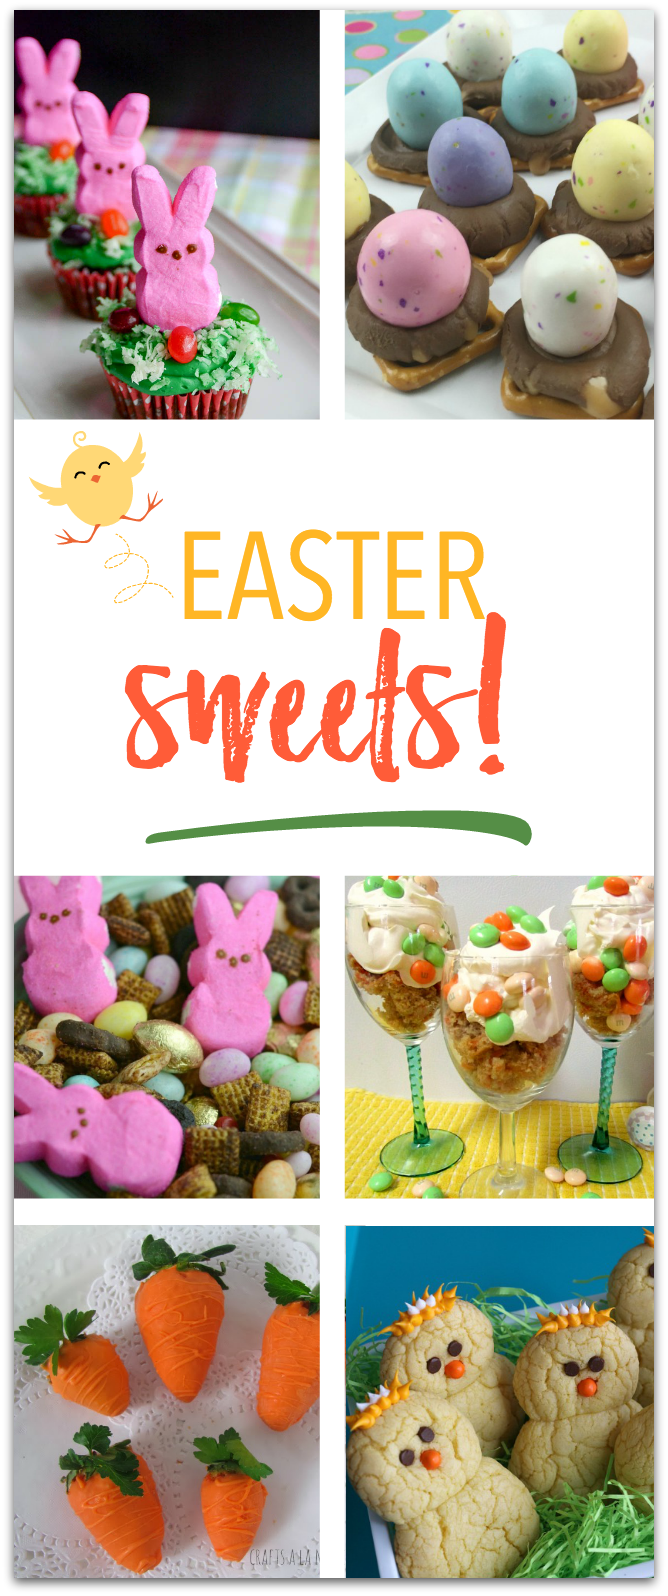 Easter Sweets your kids will LOVE to help make! TablerPartyofTwo.com